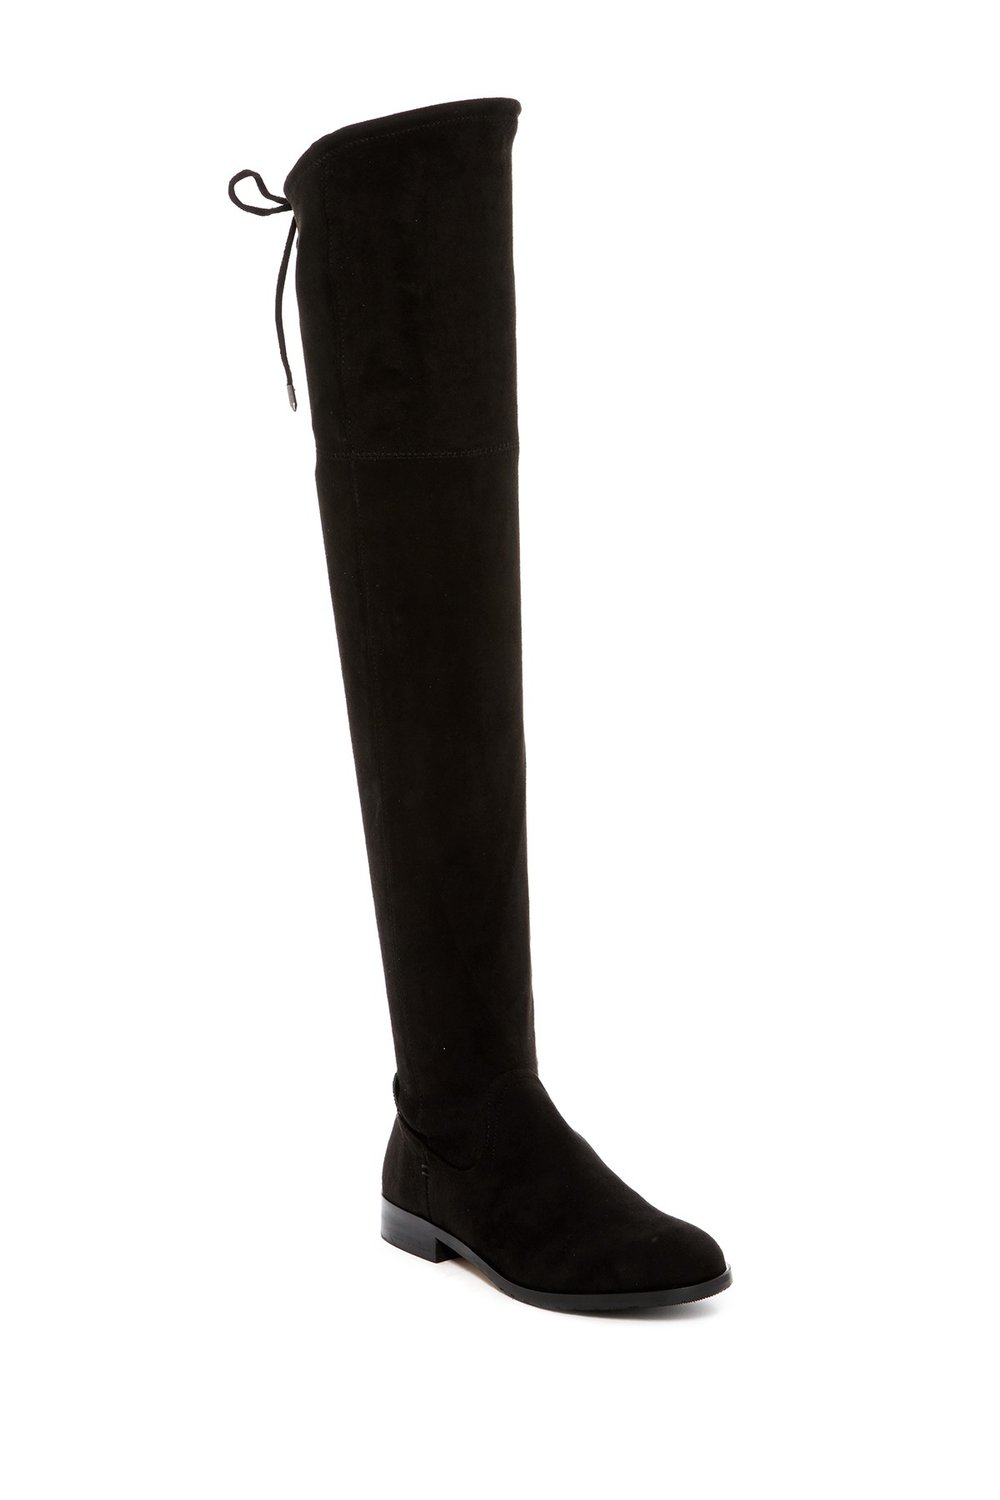 Dolce Vita Neely Over The Knee Boot. Available in two colors. Nordstrom Rack. Was: $200. Now: $89.